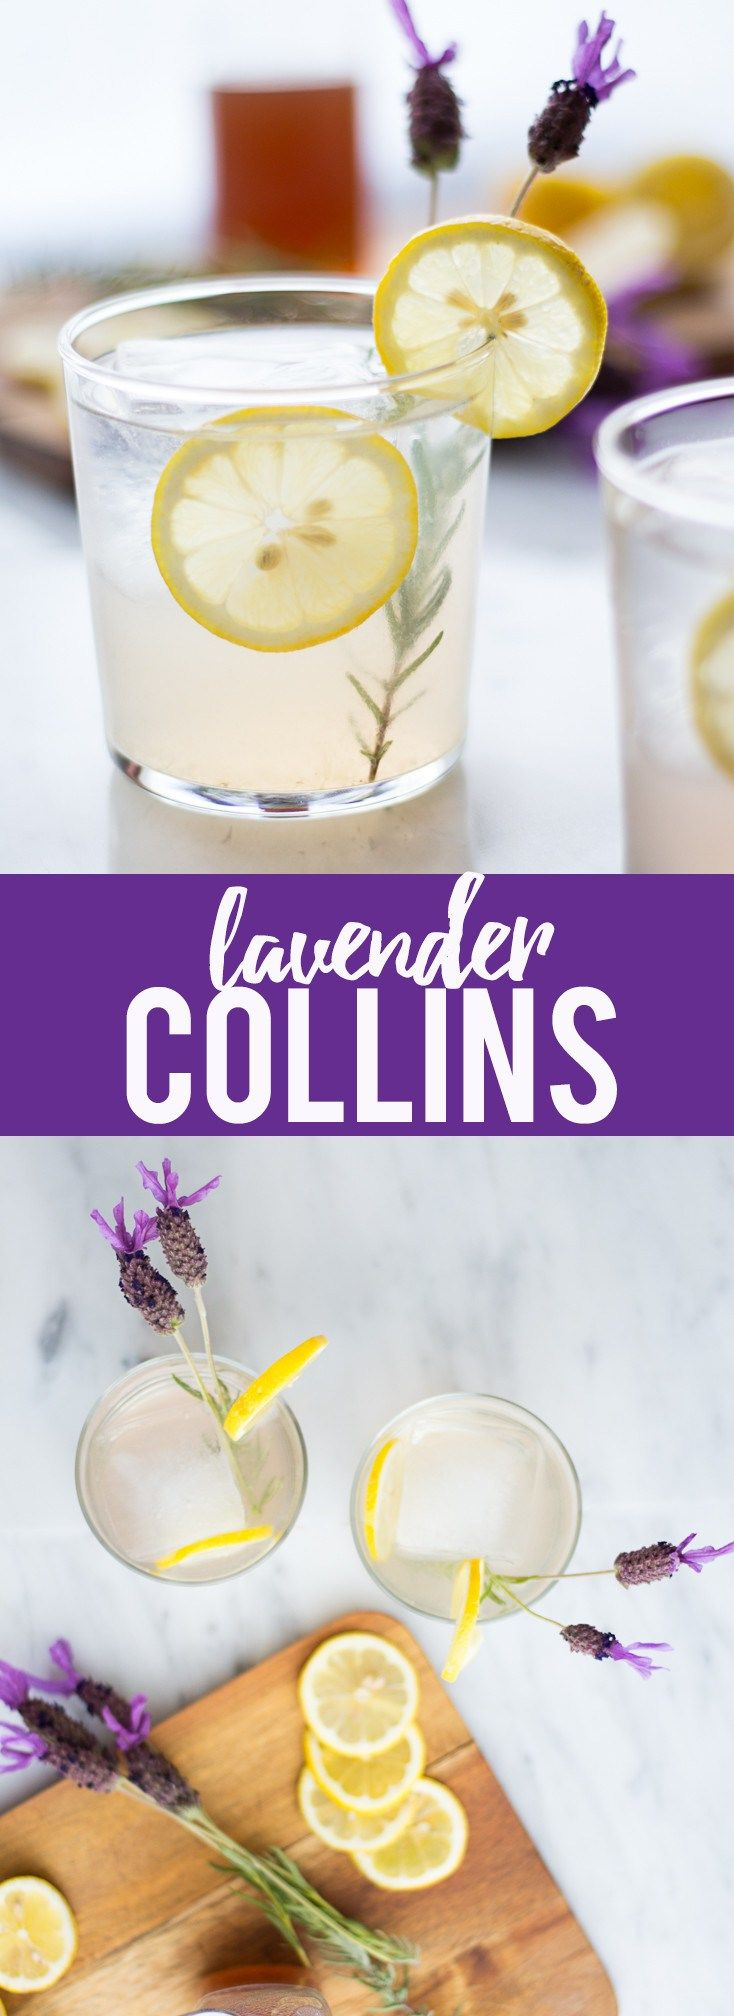 17 Best ideas about Tom Collins on Pinterest | Tom collins ...